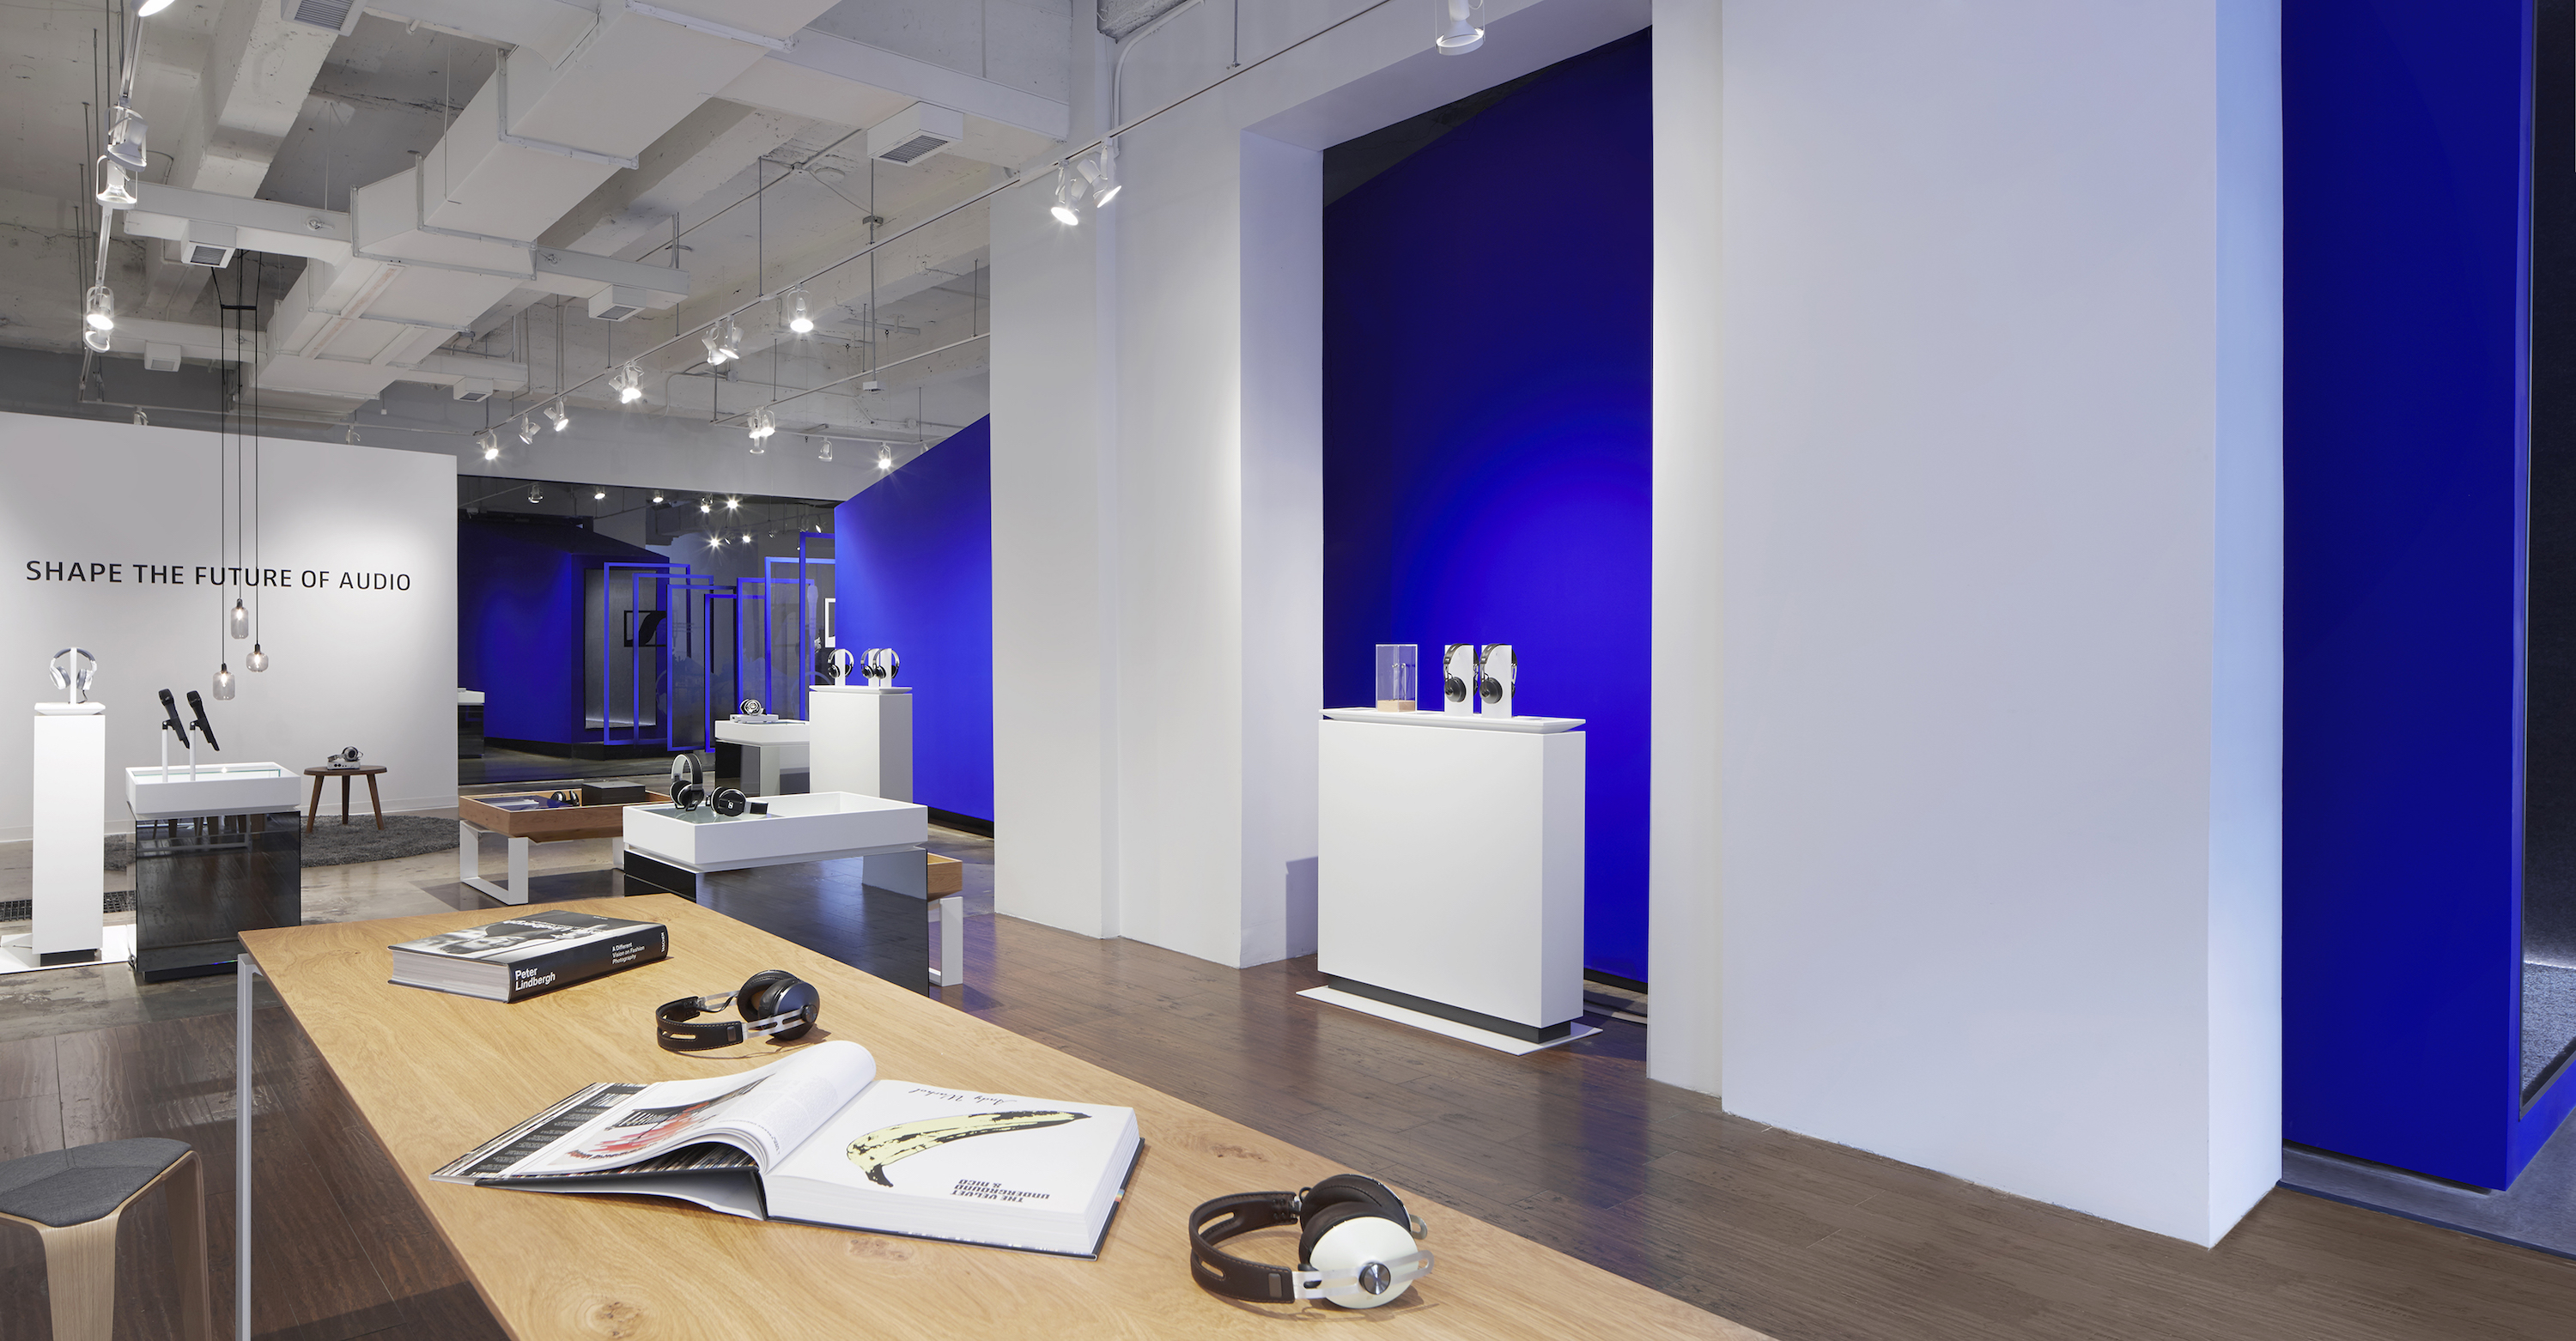 The Sennheiser pop-up store in SoHo invites New Yorkers to e